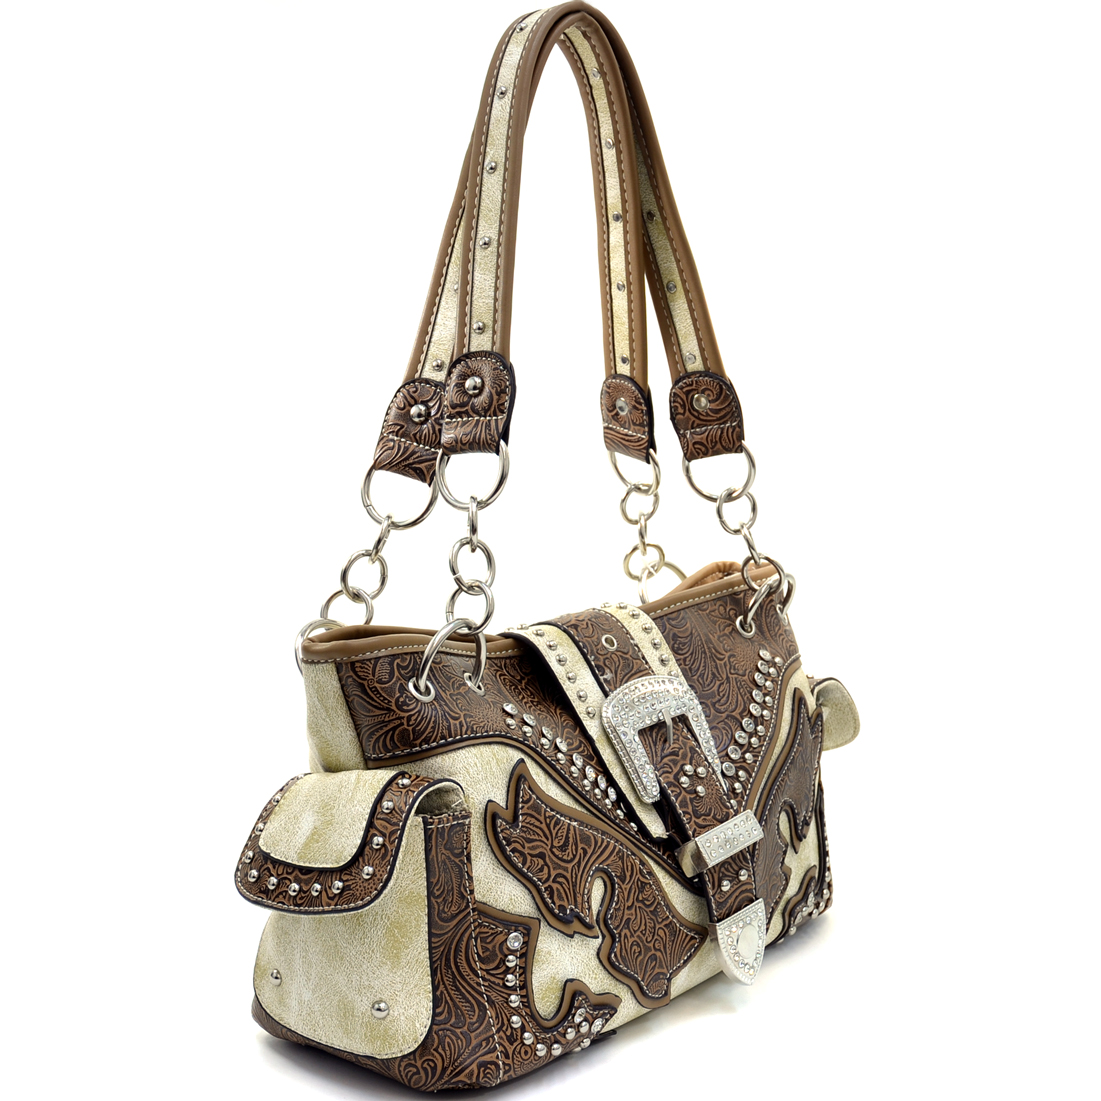 Buckled Rhinestone Studded Western Shoulder Bag